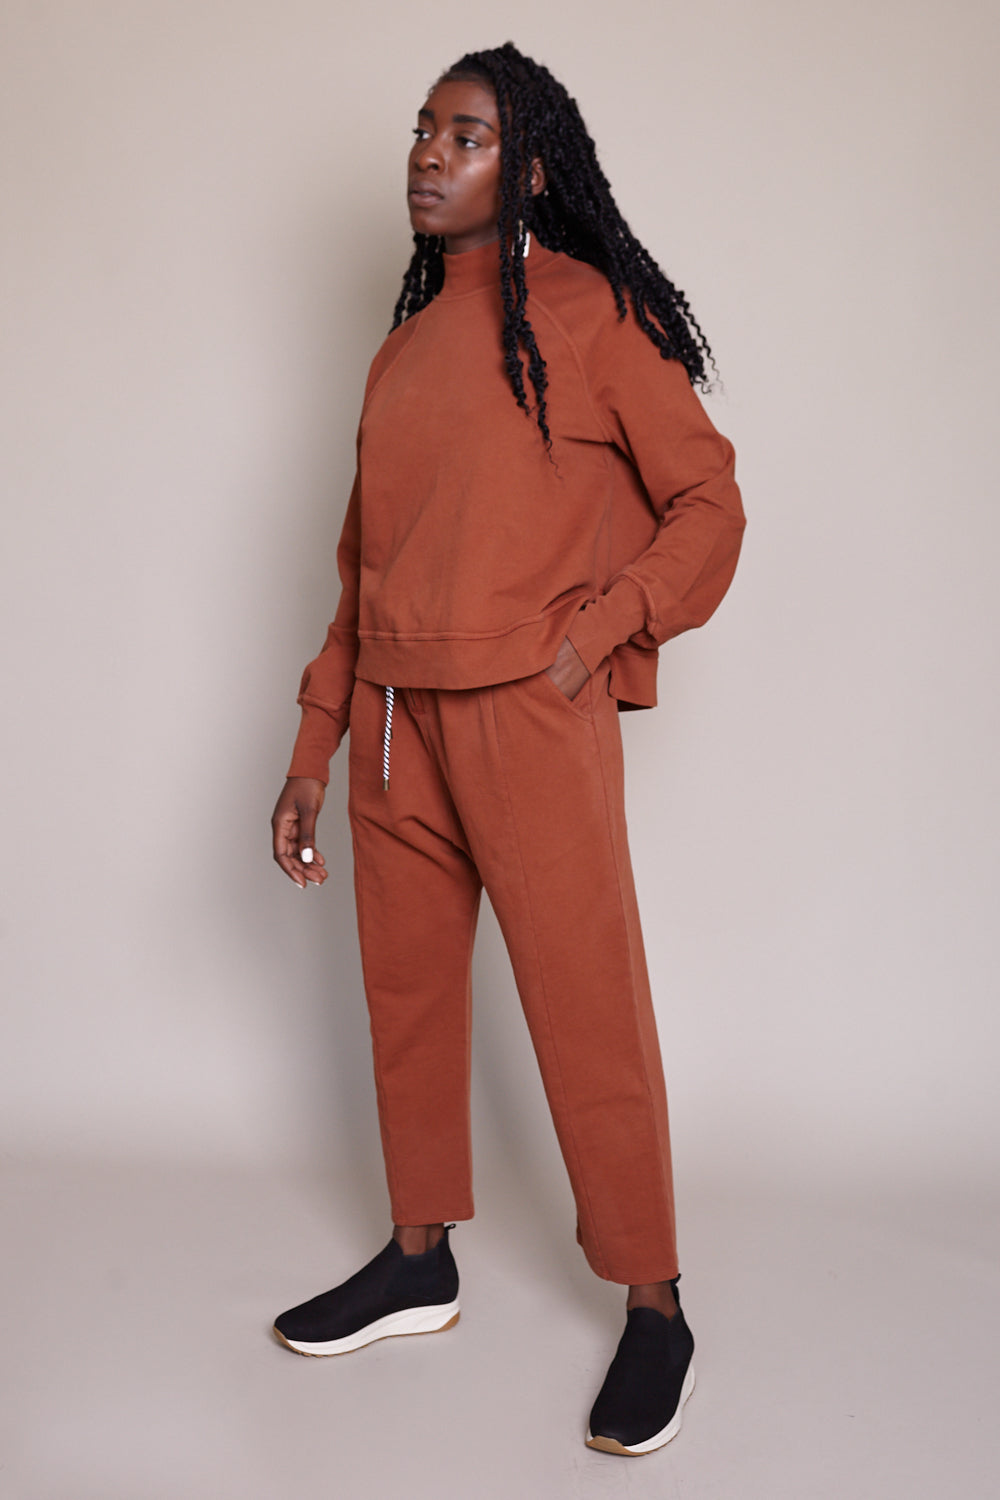 Hera Sweat Pant in Copper